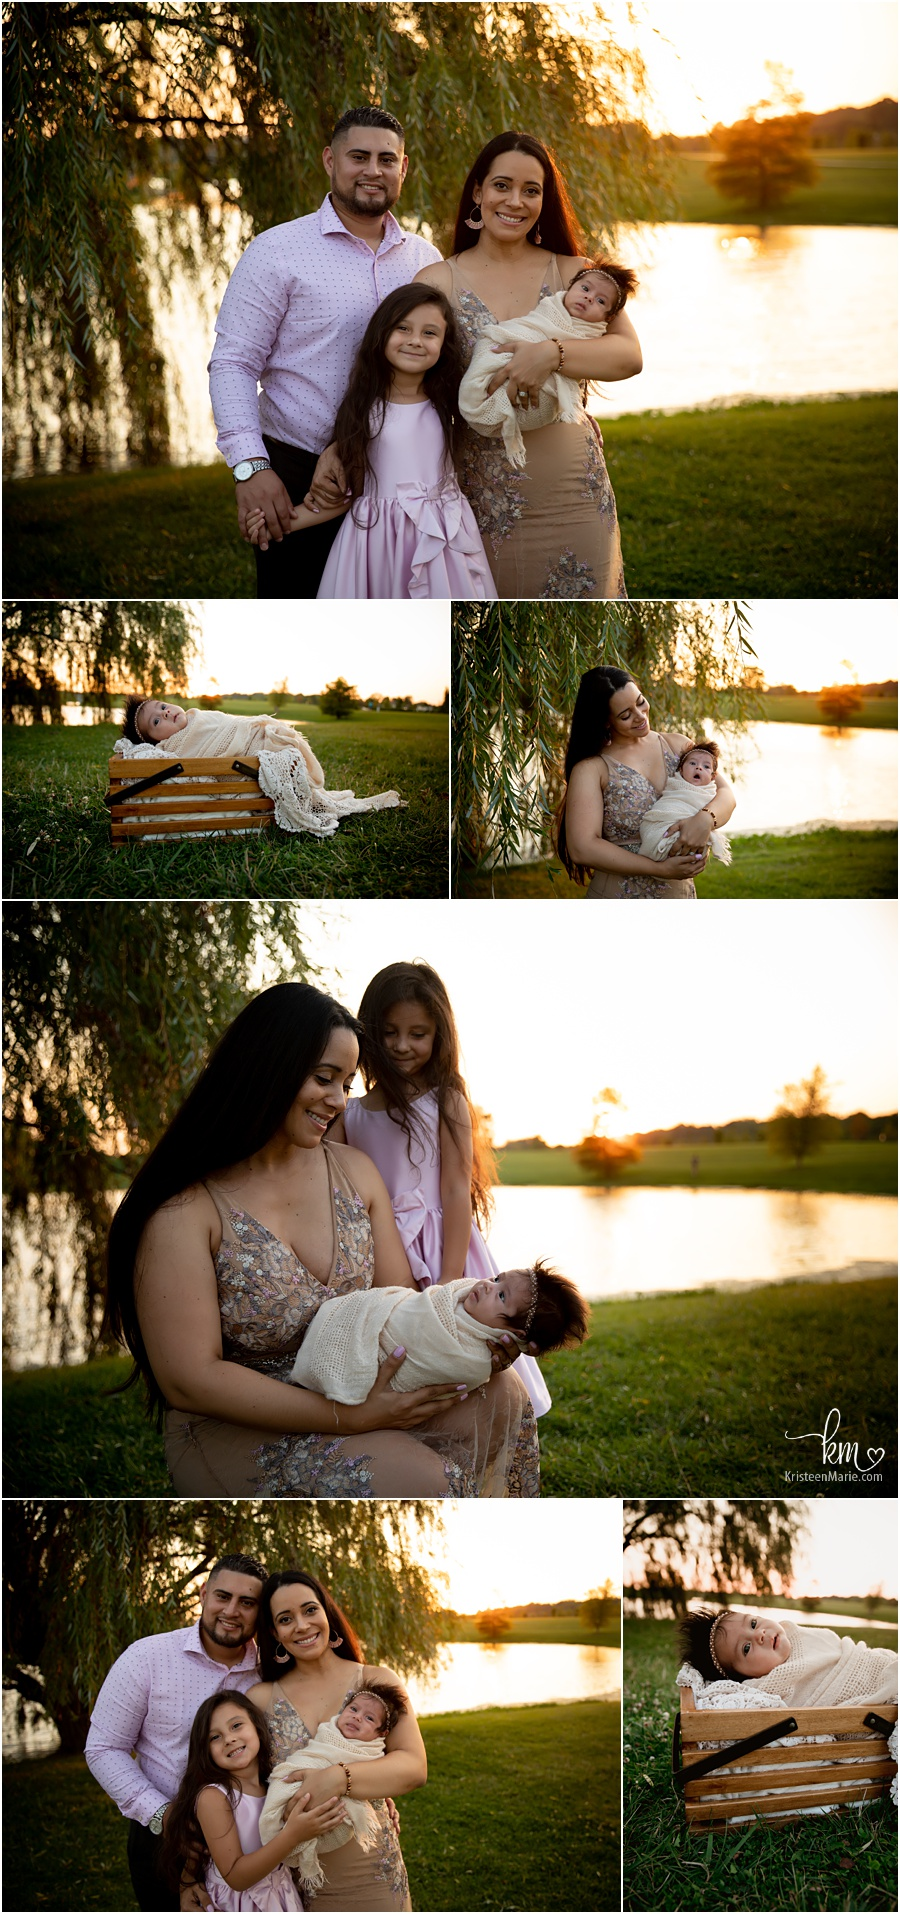 outdoor newborn photography at sunset backlit - Indianapolis photographer